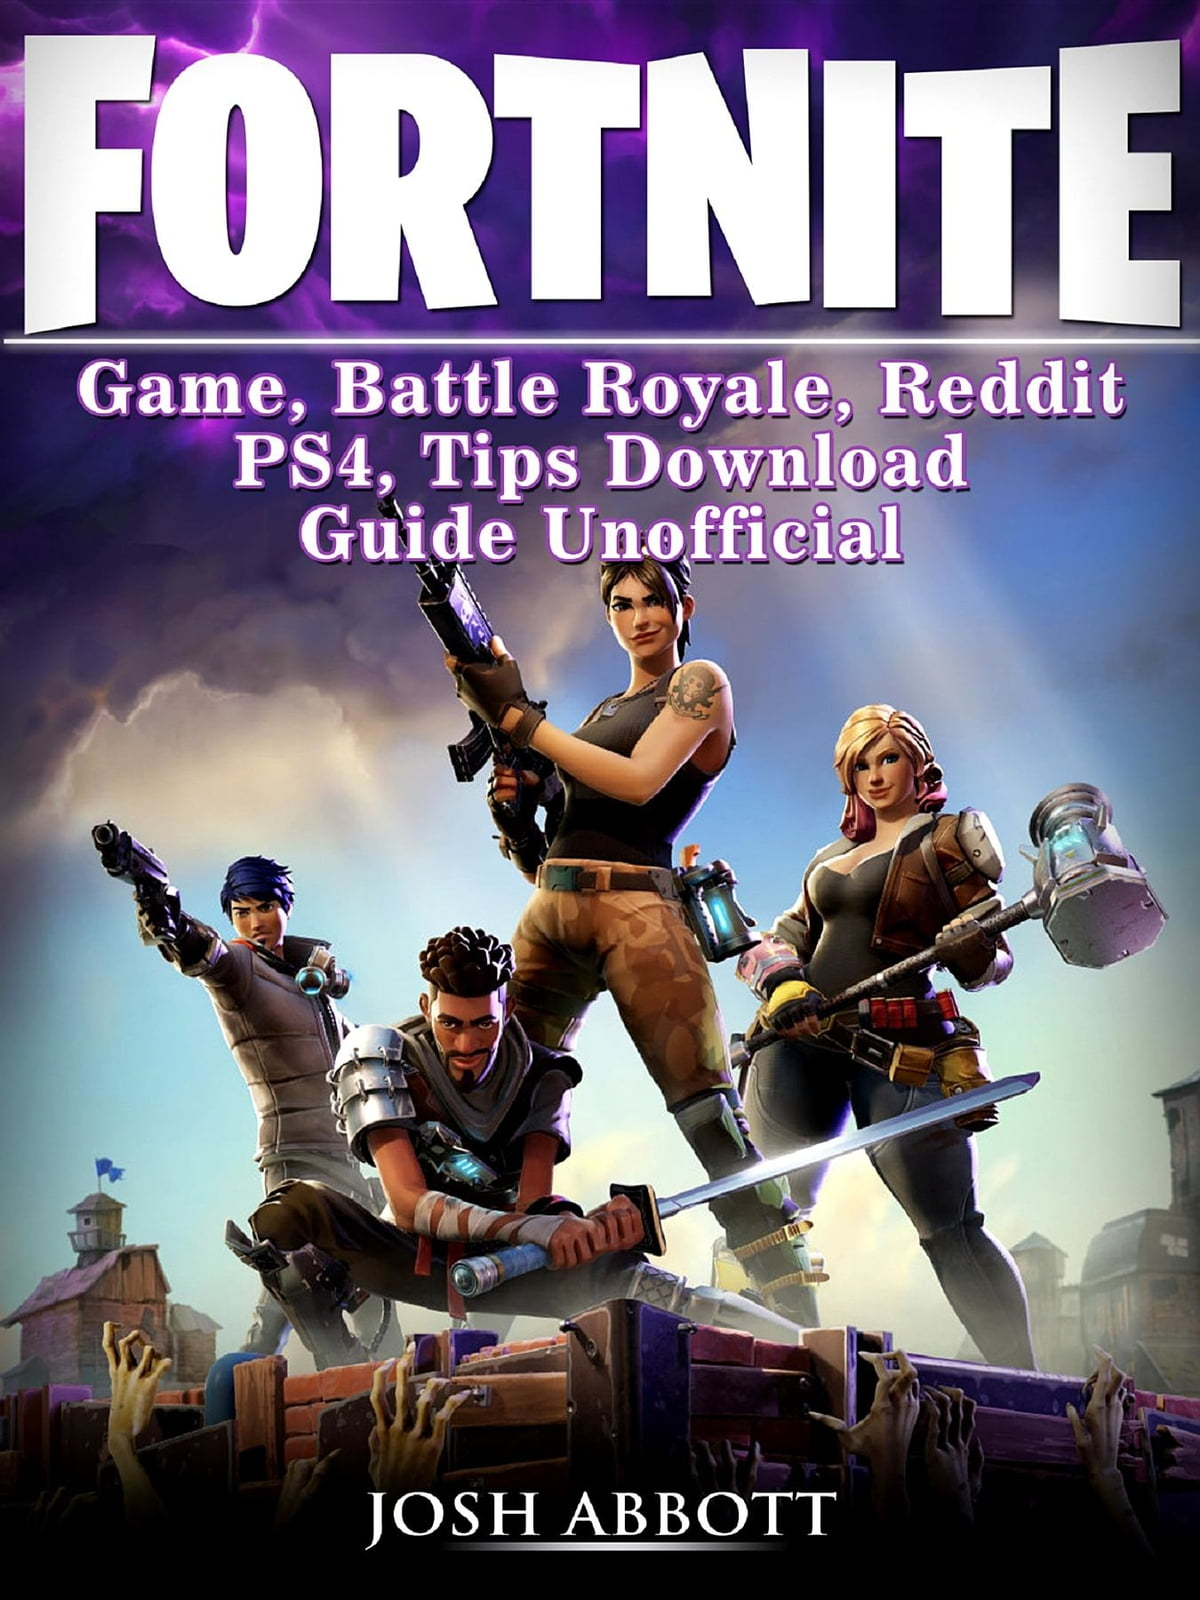 Fortnite Game, Battle Royale, Reddit, PS4, Tips, Download Guide Unofficial  ebook by Josh Abbott - Rakuten Kobo